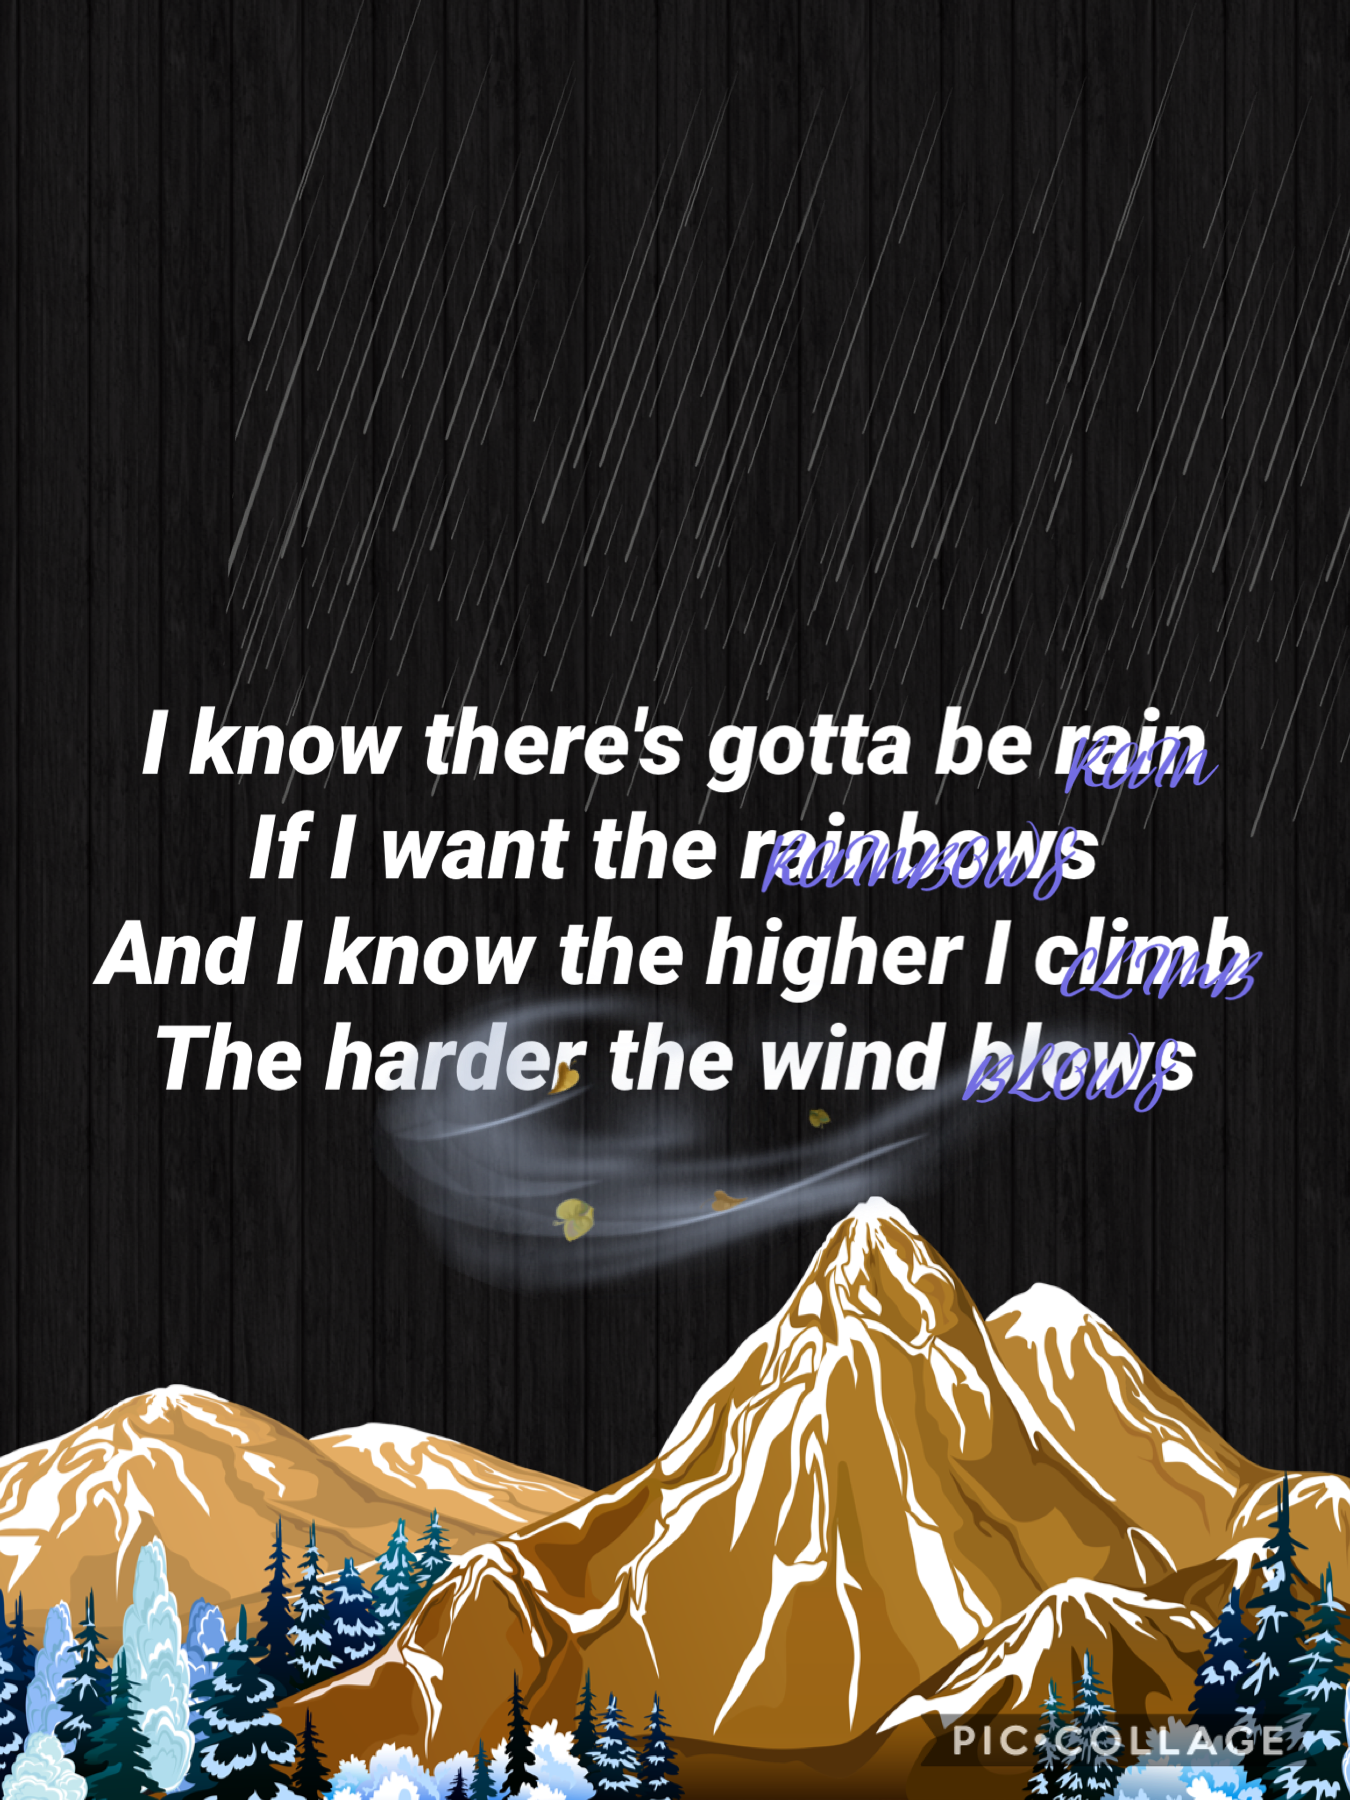 Song: resilient by: Katy Perry 5/01/21